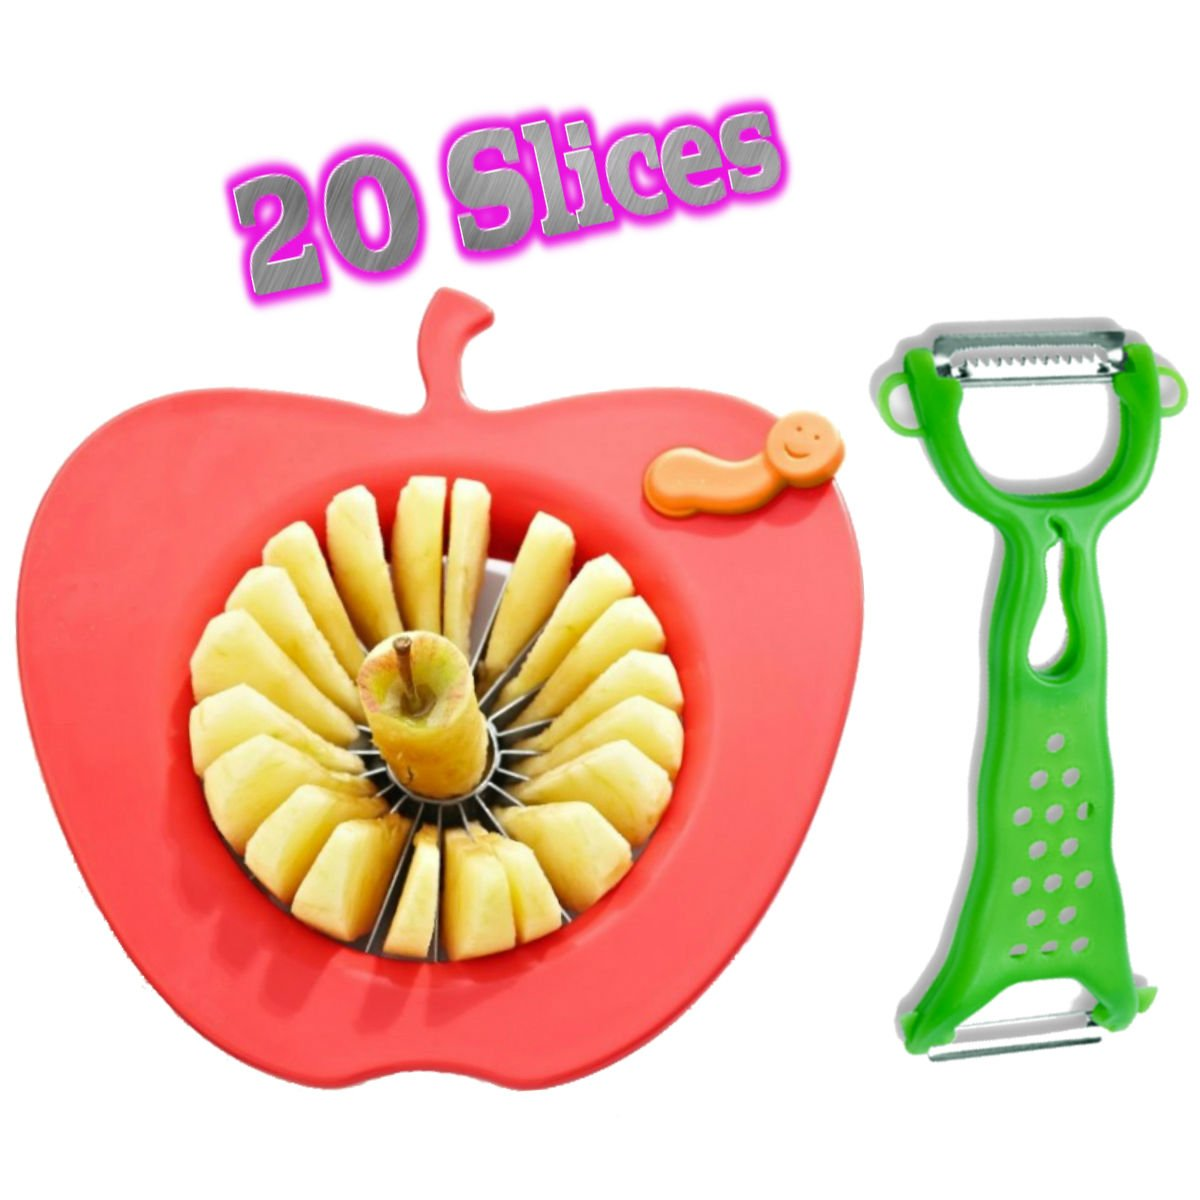 Corer Slicer Peeler and Divider Set Cuts 20 Thin Apple Slices for Kids Onion Slicer for Vegetables Tomato Potato Slicer with Bonus Julienne Peeler Slicer Zester Kitchen Gadgets